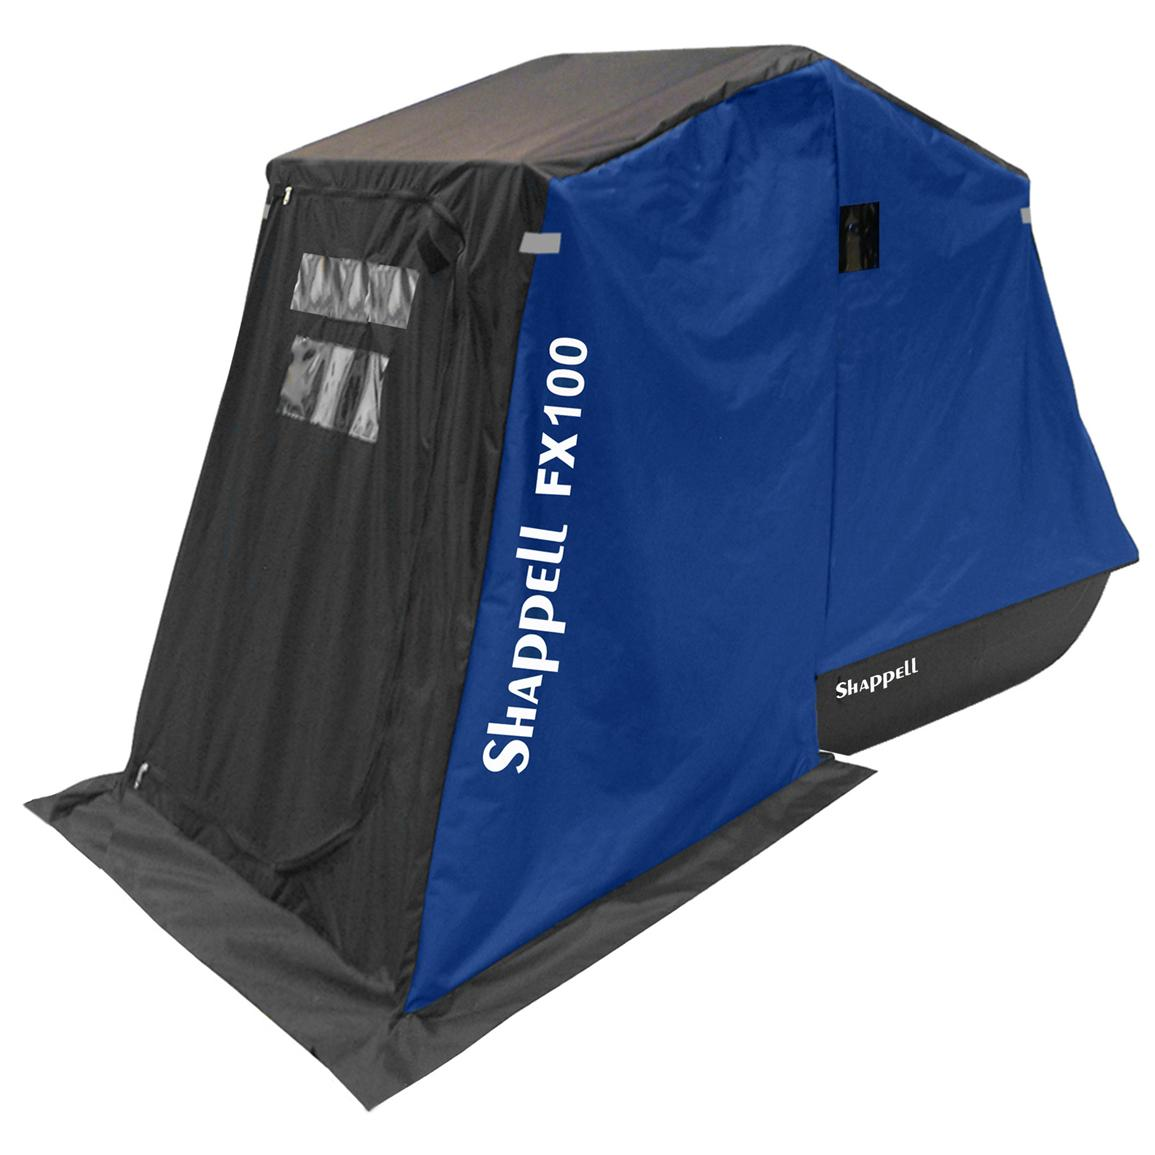 Shappell® FX100 One-man Ice Shelter